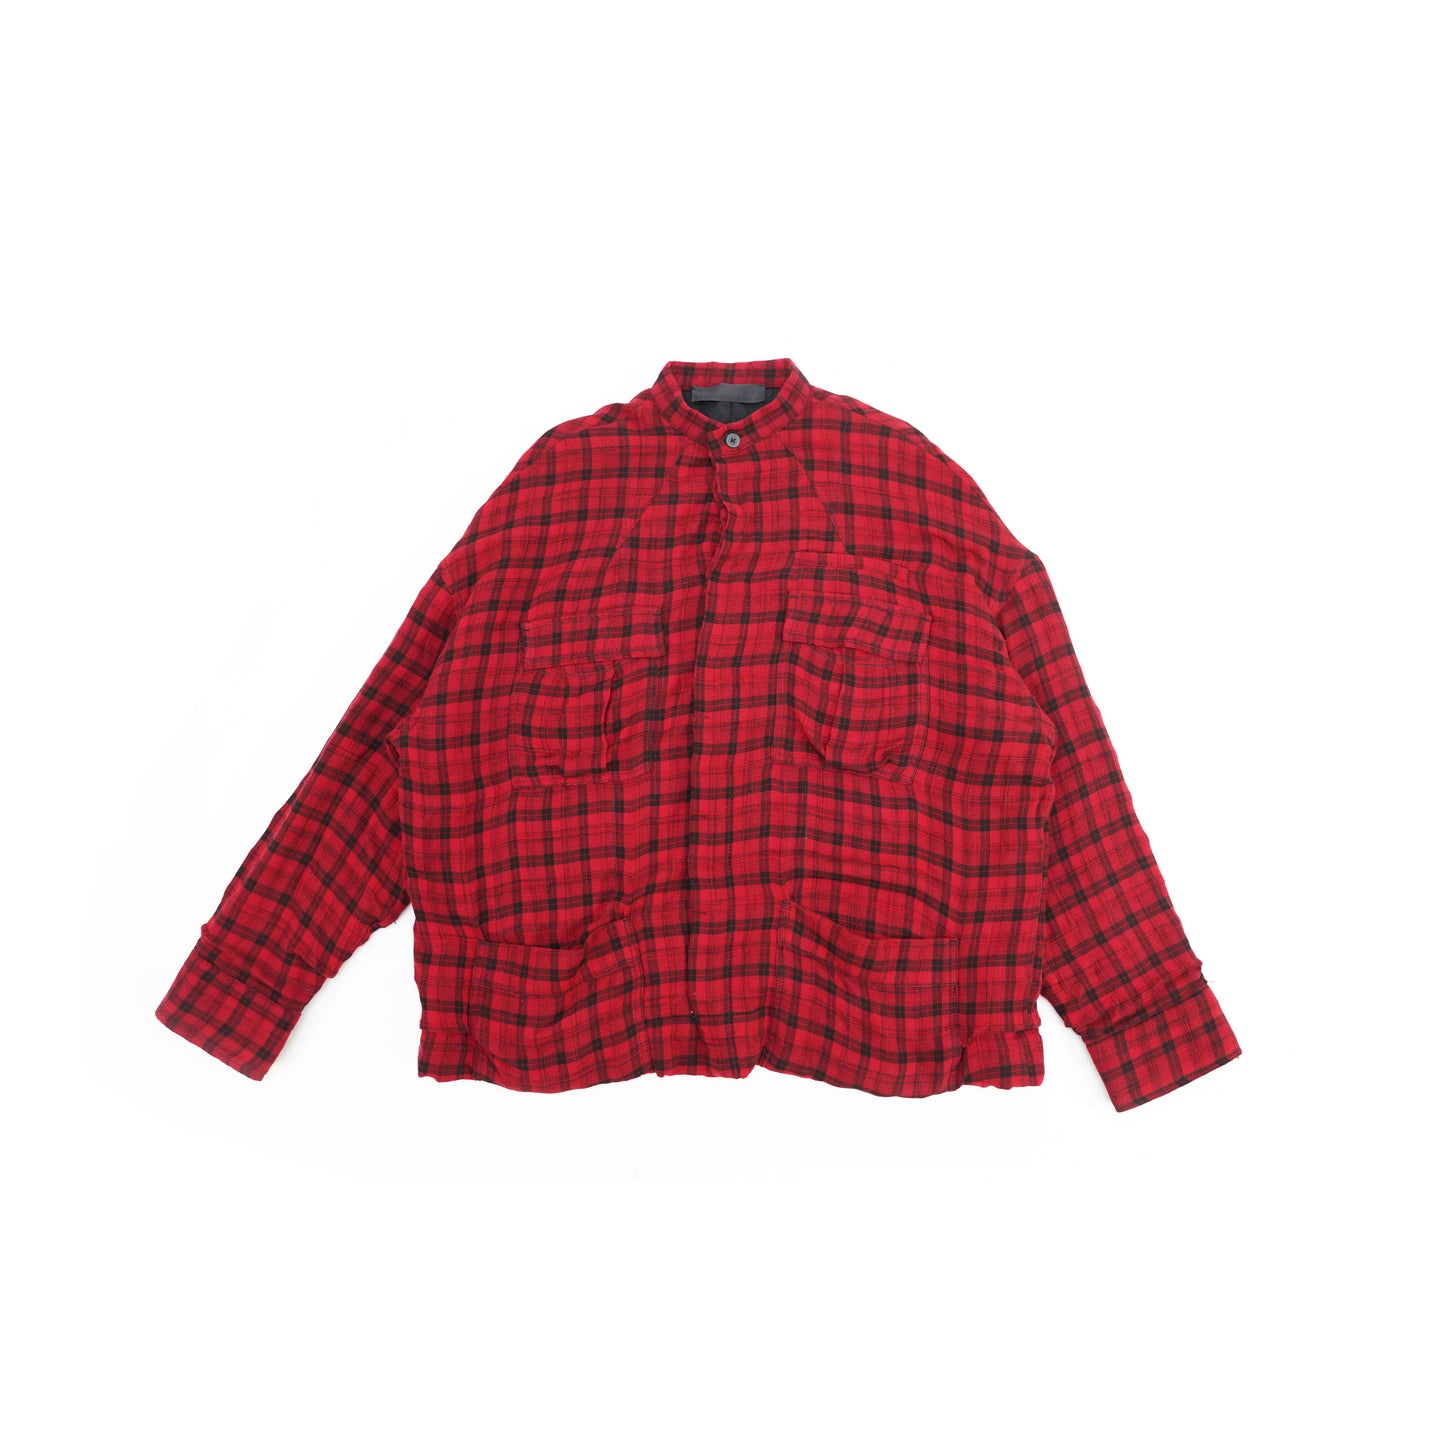 FW17 Quilted Red Runway Sample Shirt